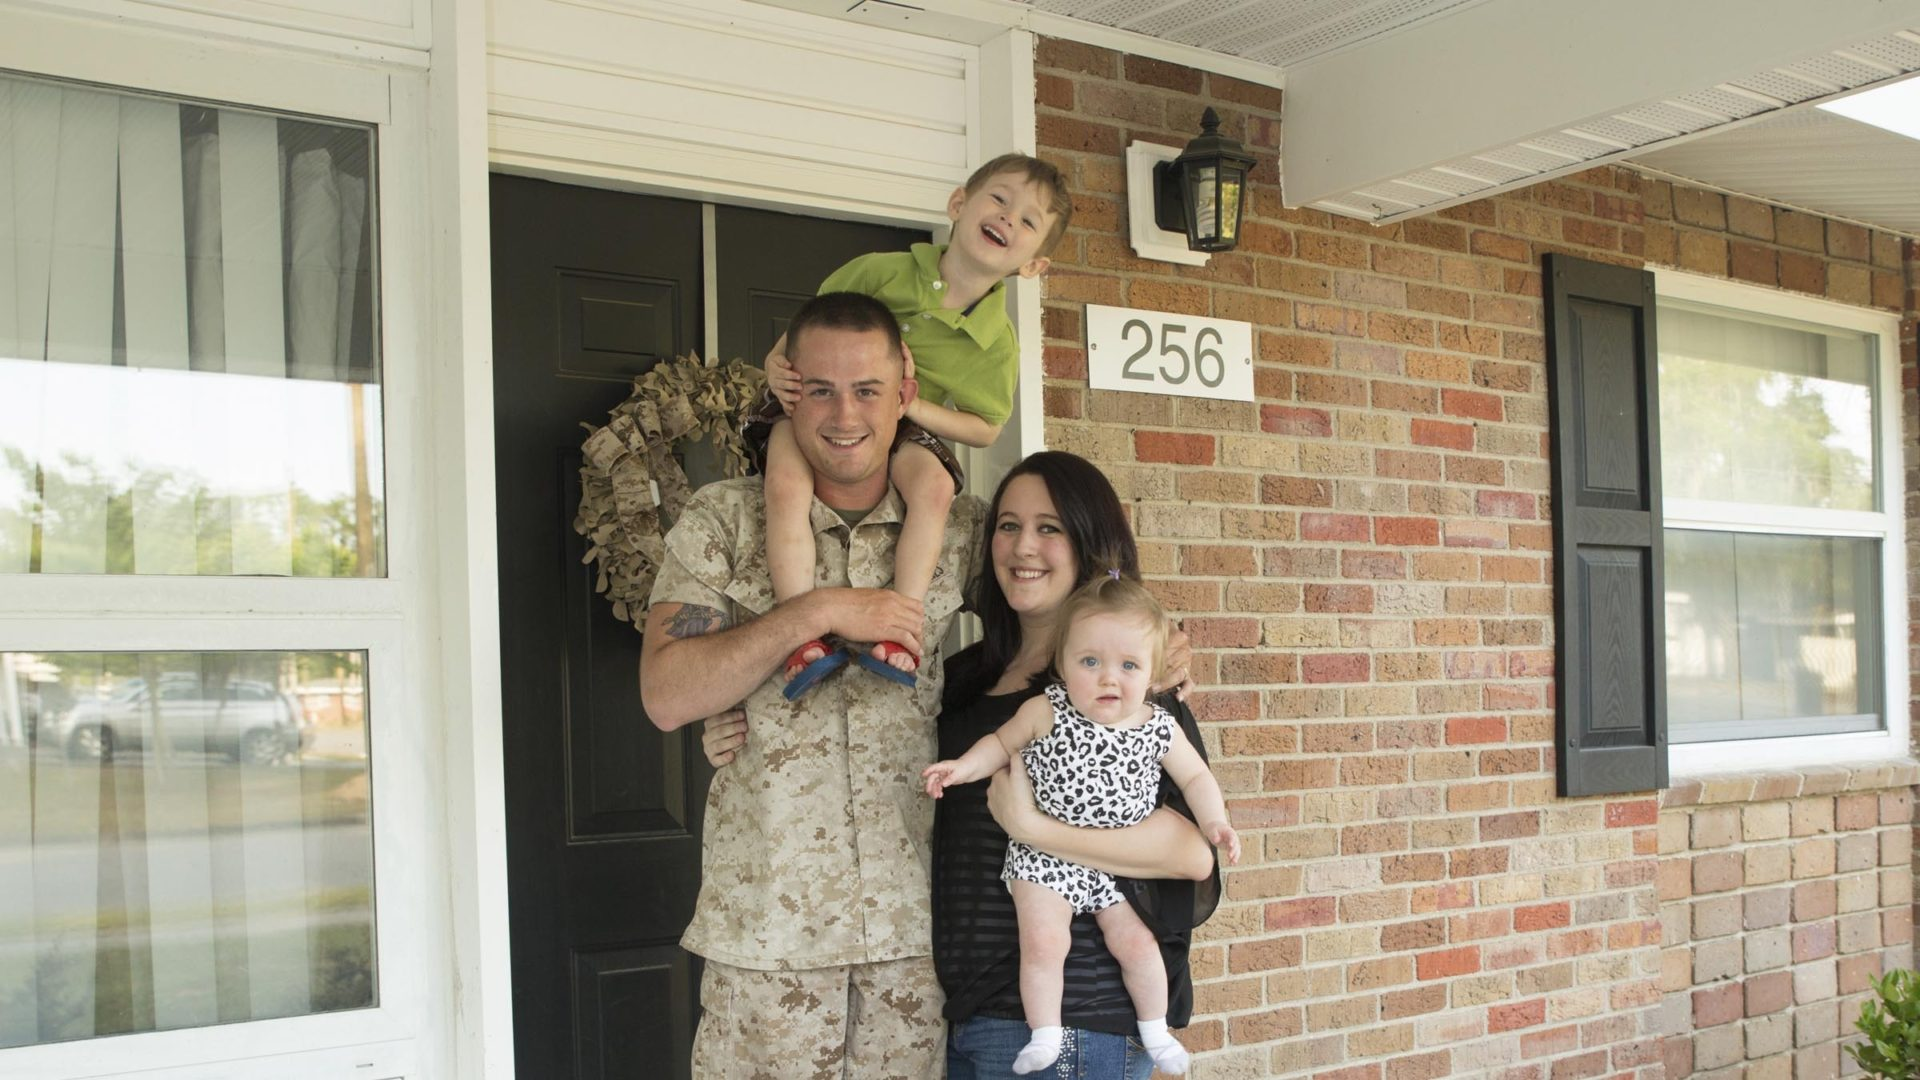 Family standing outside front door of home